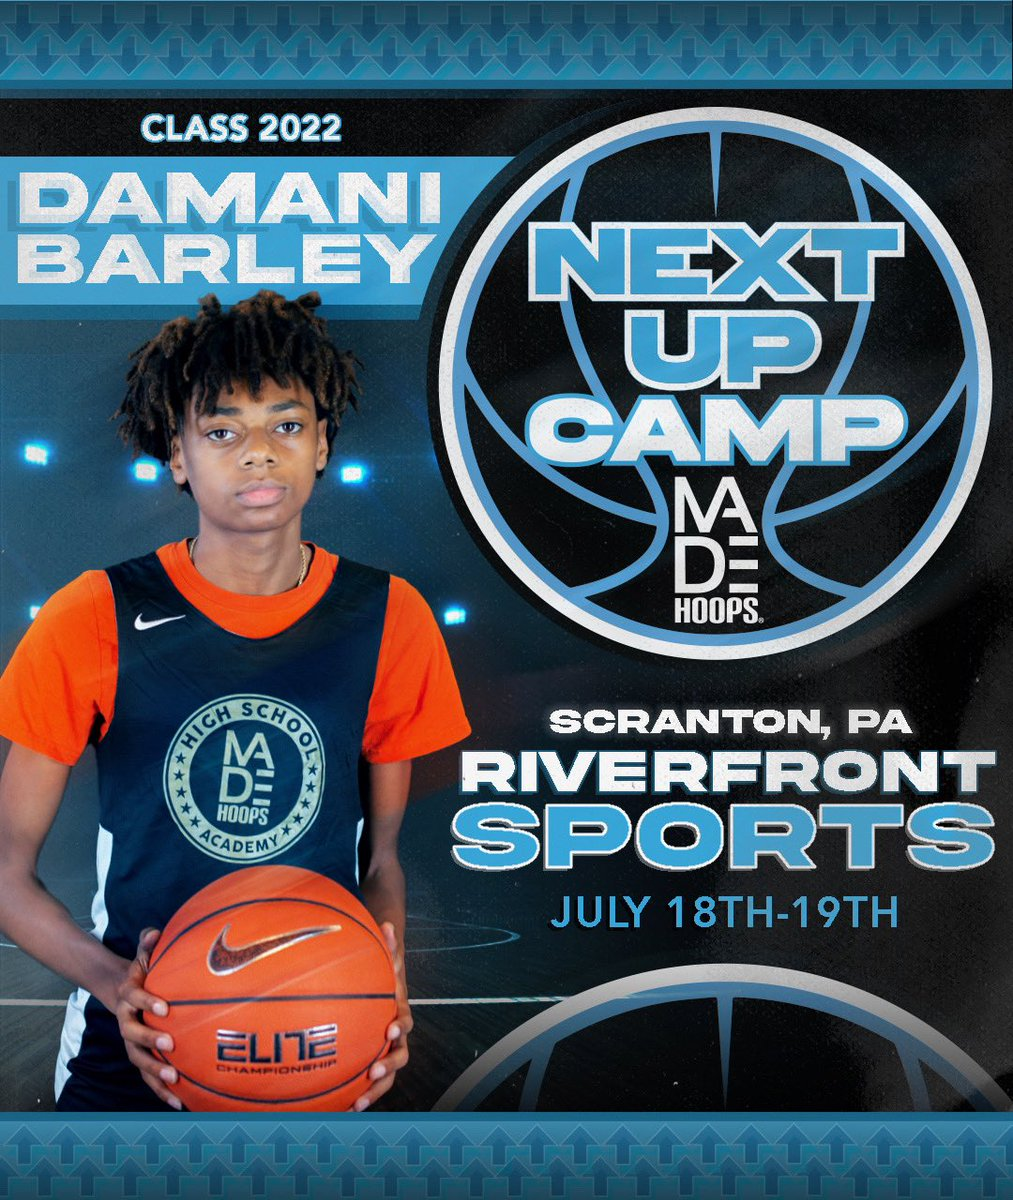 2022 Damani Barley is LOCKED IN 🔐 and ready to show out at Next Up Camp! 💪  Are YOU Next Up? It's time to #CreateYourName.  🗓: July 11th-12th, 18th-19th, & 25th-26th ⛹️: Classes 2021-2026 🏟: Riverfront Sports 📍: Scranton, PA 🎥: Live Streamed  🎟: https://t.co/Pwy8j4Nvqa https://t.co/cZMZKmFKIR